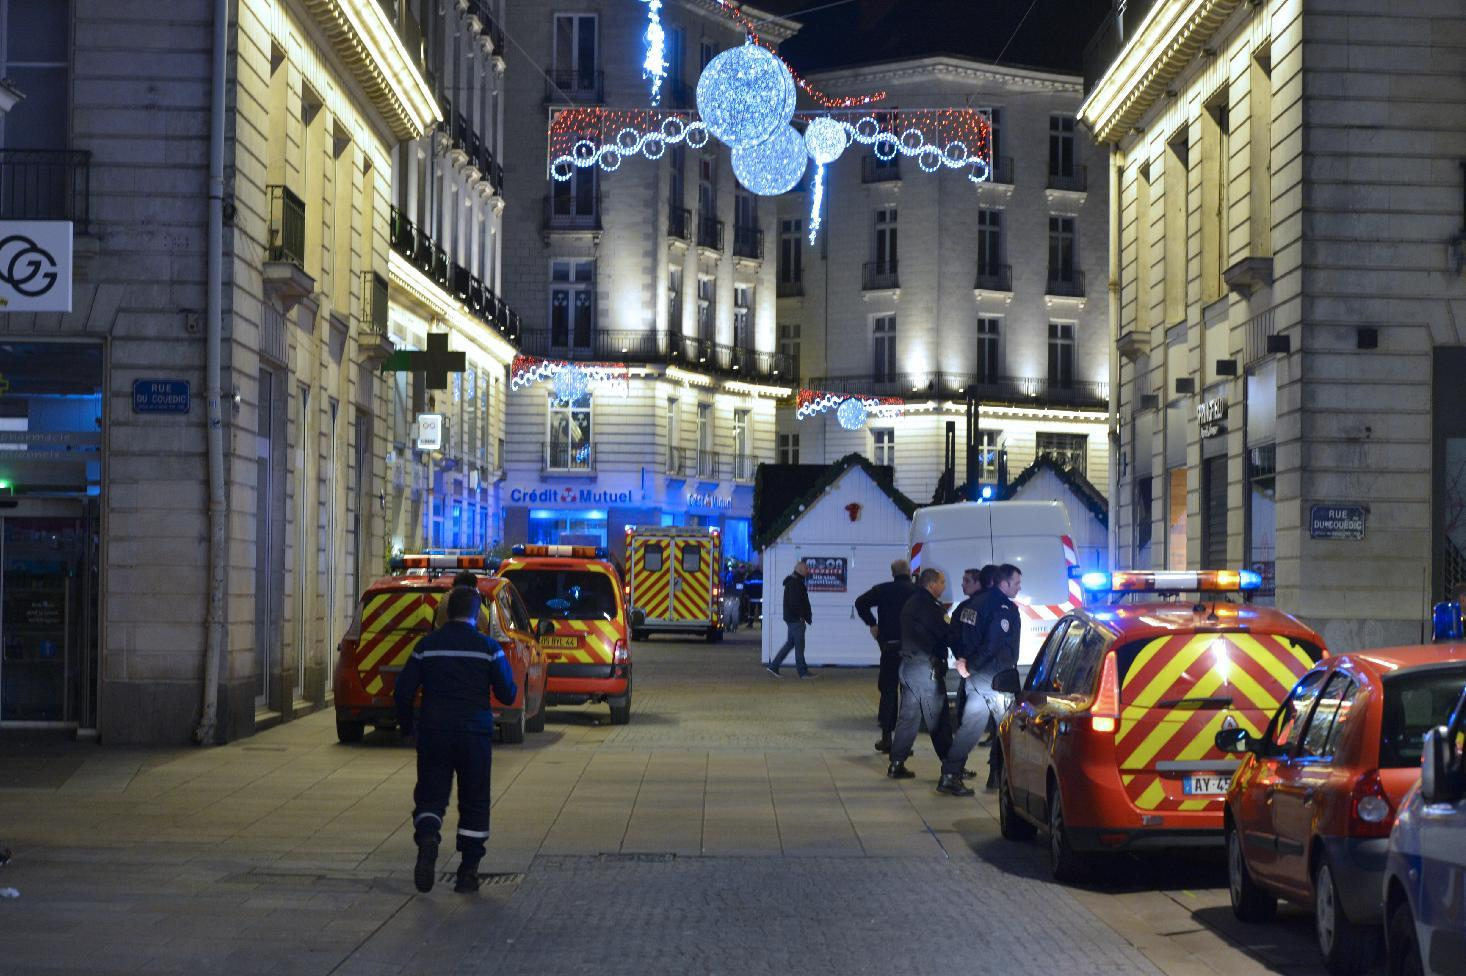 Police stand on the site where the driver of a van ploughed into a Christmas market, injuring at least 10 people, before stabbing himself, in Nantes on December 22, 2014 (AFP Photo/Georges Gobet)